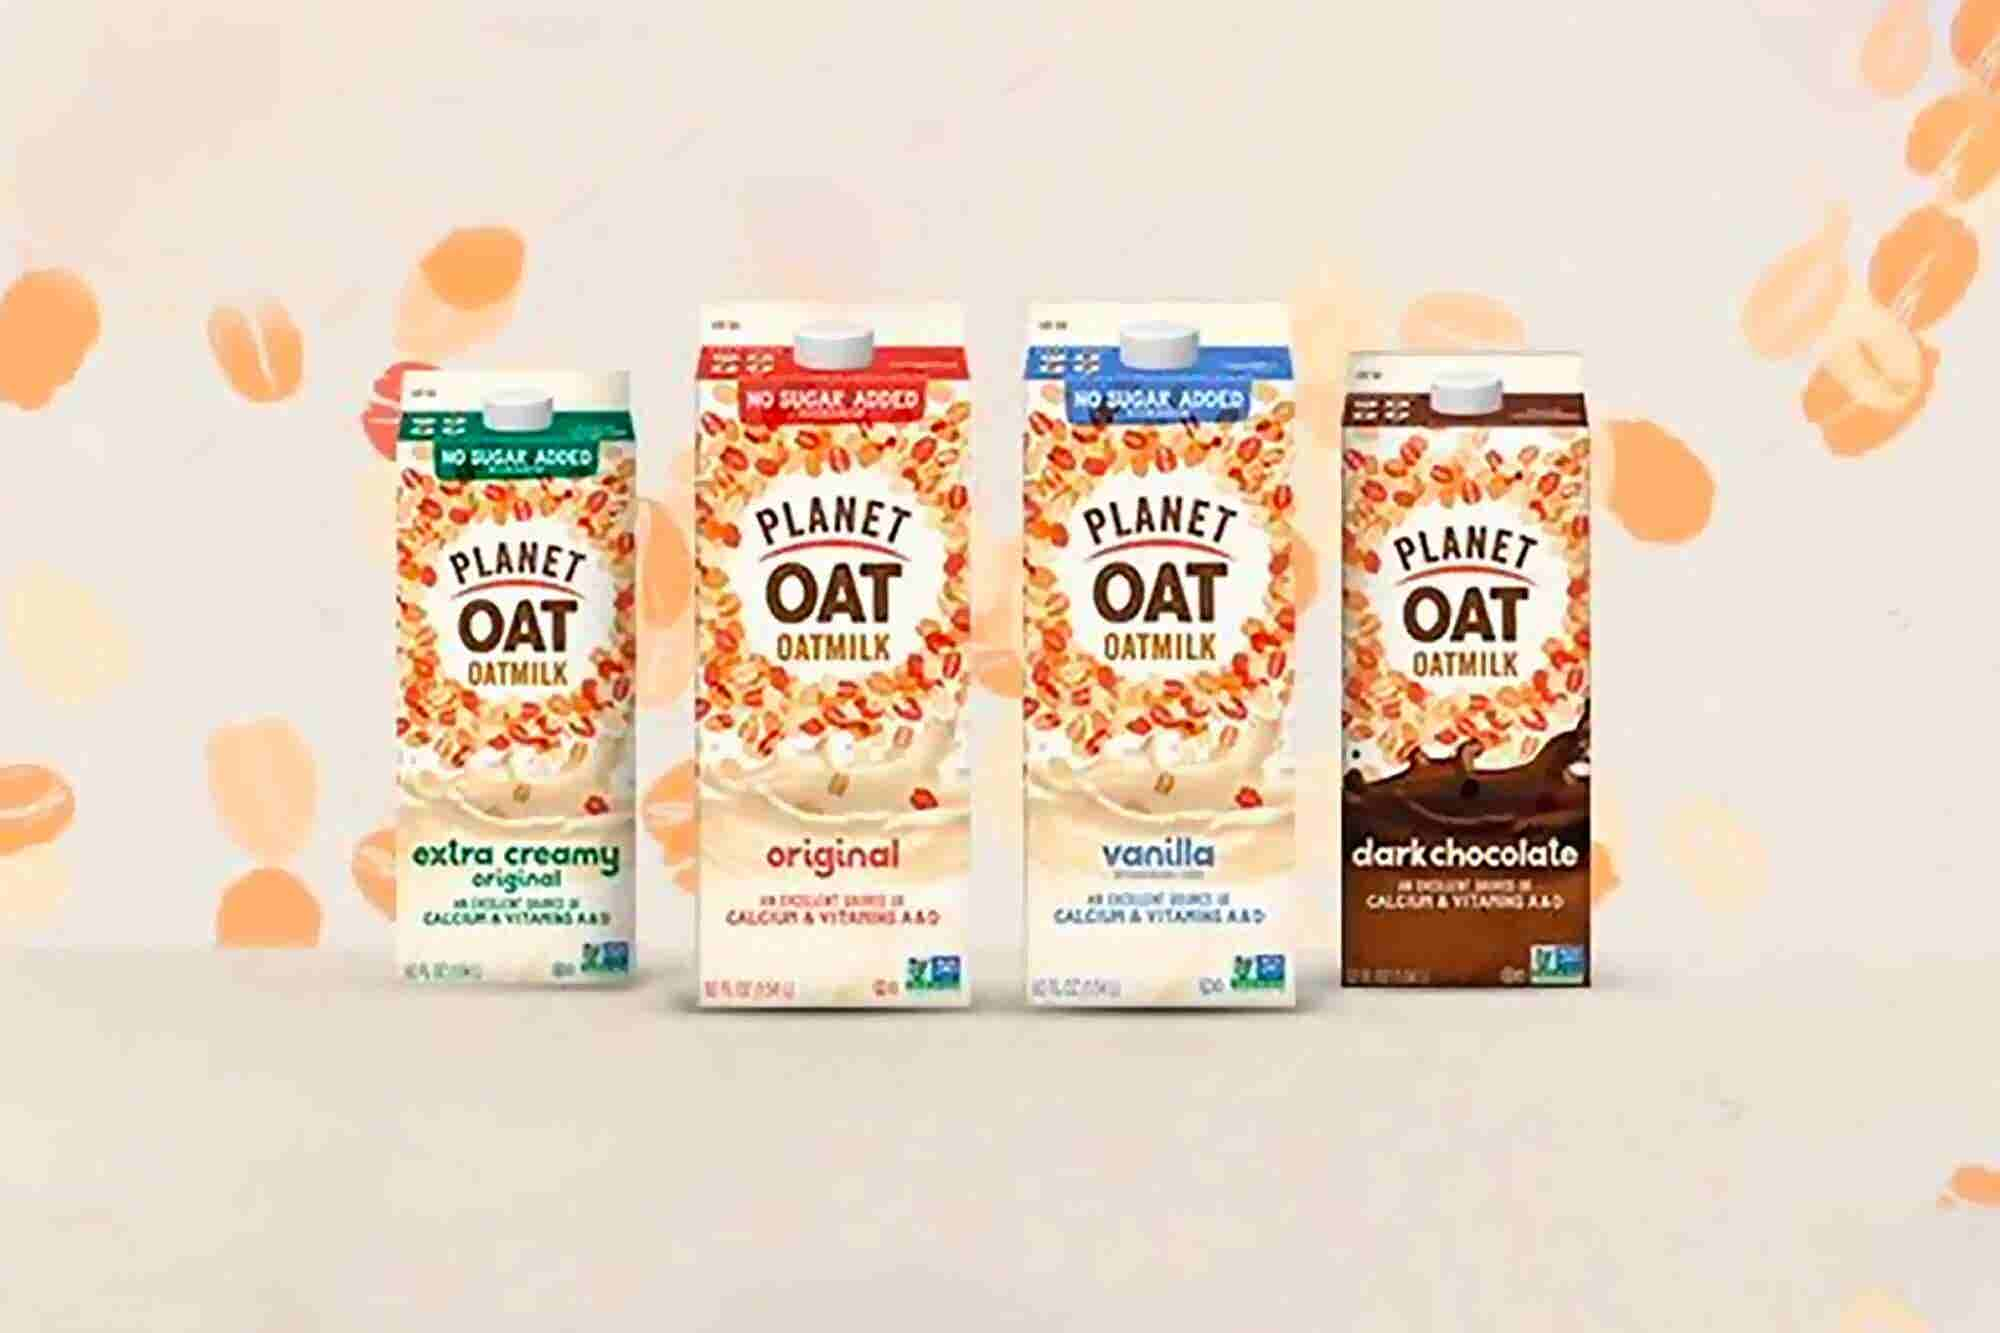 Competition Is Getting Fierce in the White-Hot Oat Milk Space